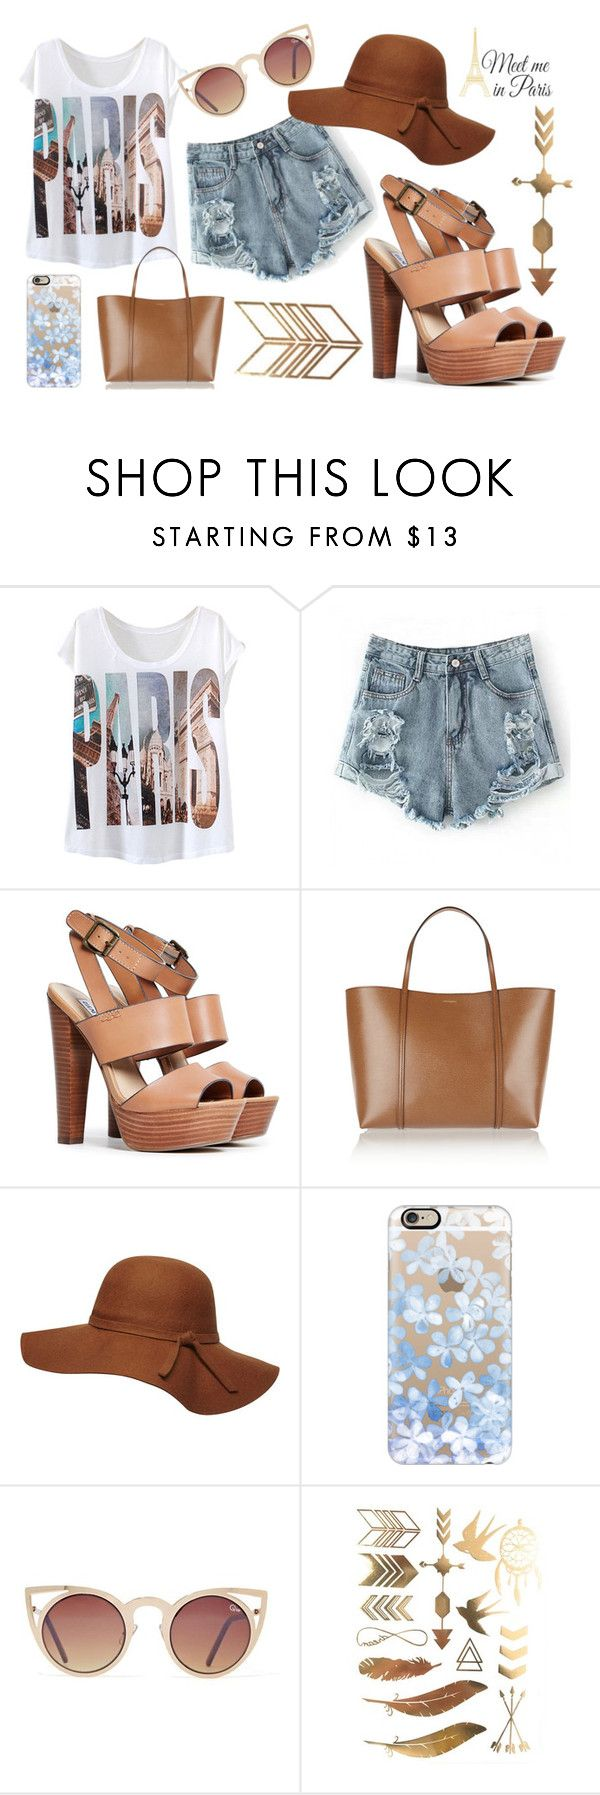 """""""Meet me in Paris"""" by lenasin ❤ liked on Polyvore featuring Steve Madden, Dolce&Gabbana, Dorothy Perkins, Casetify, Quay and WallPops"""